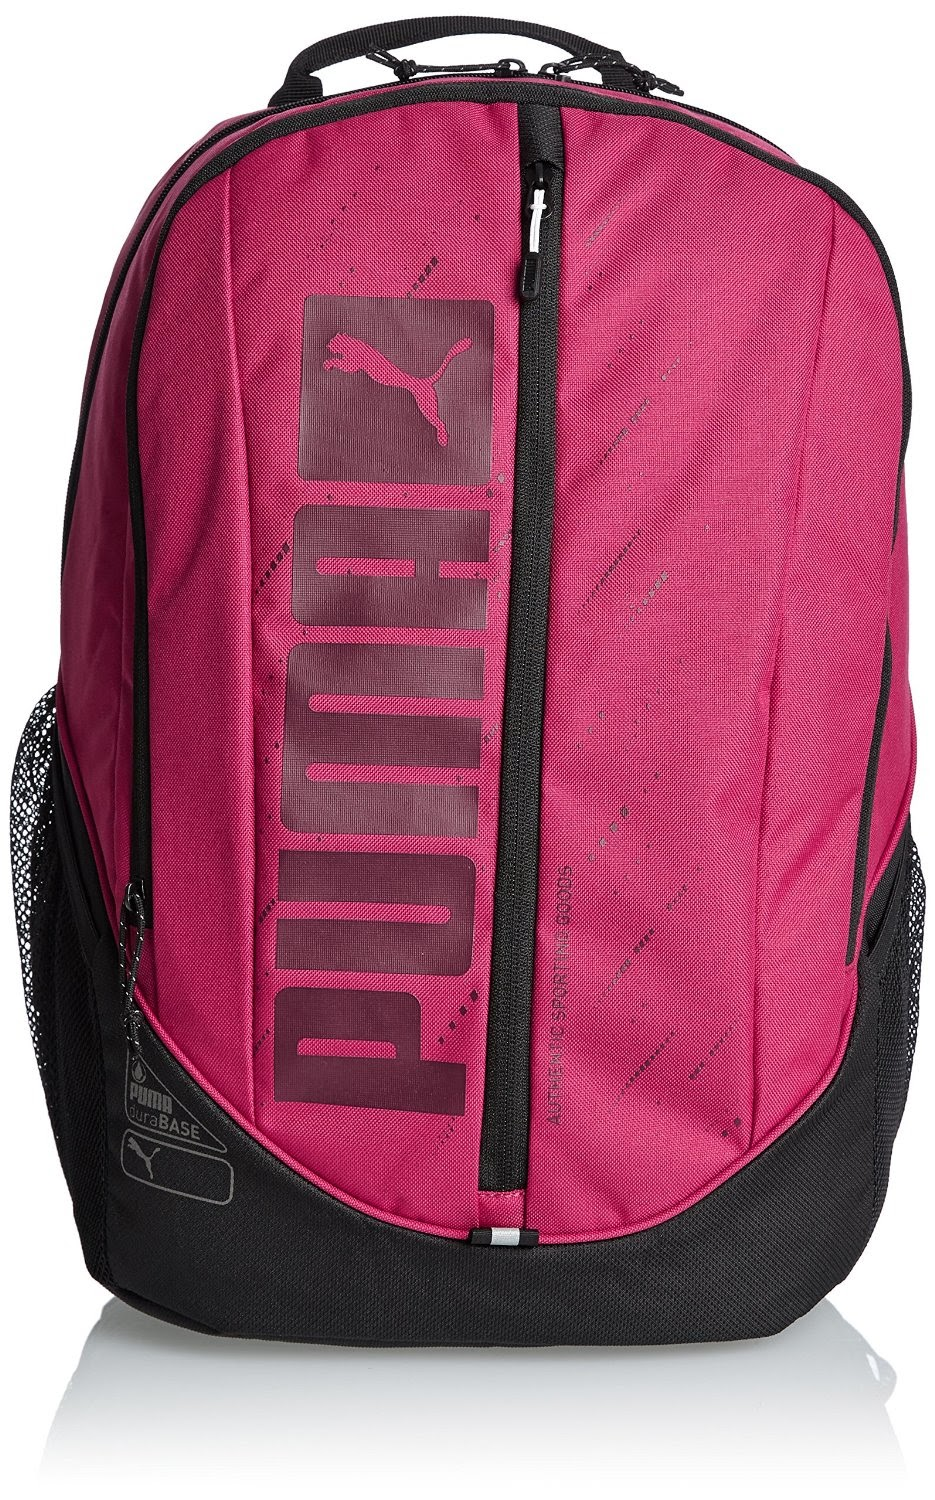 Amazon : Buy Puma Deck Backpack Cerise at Rs. 539 only